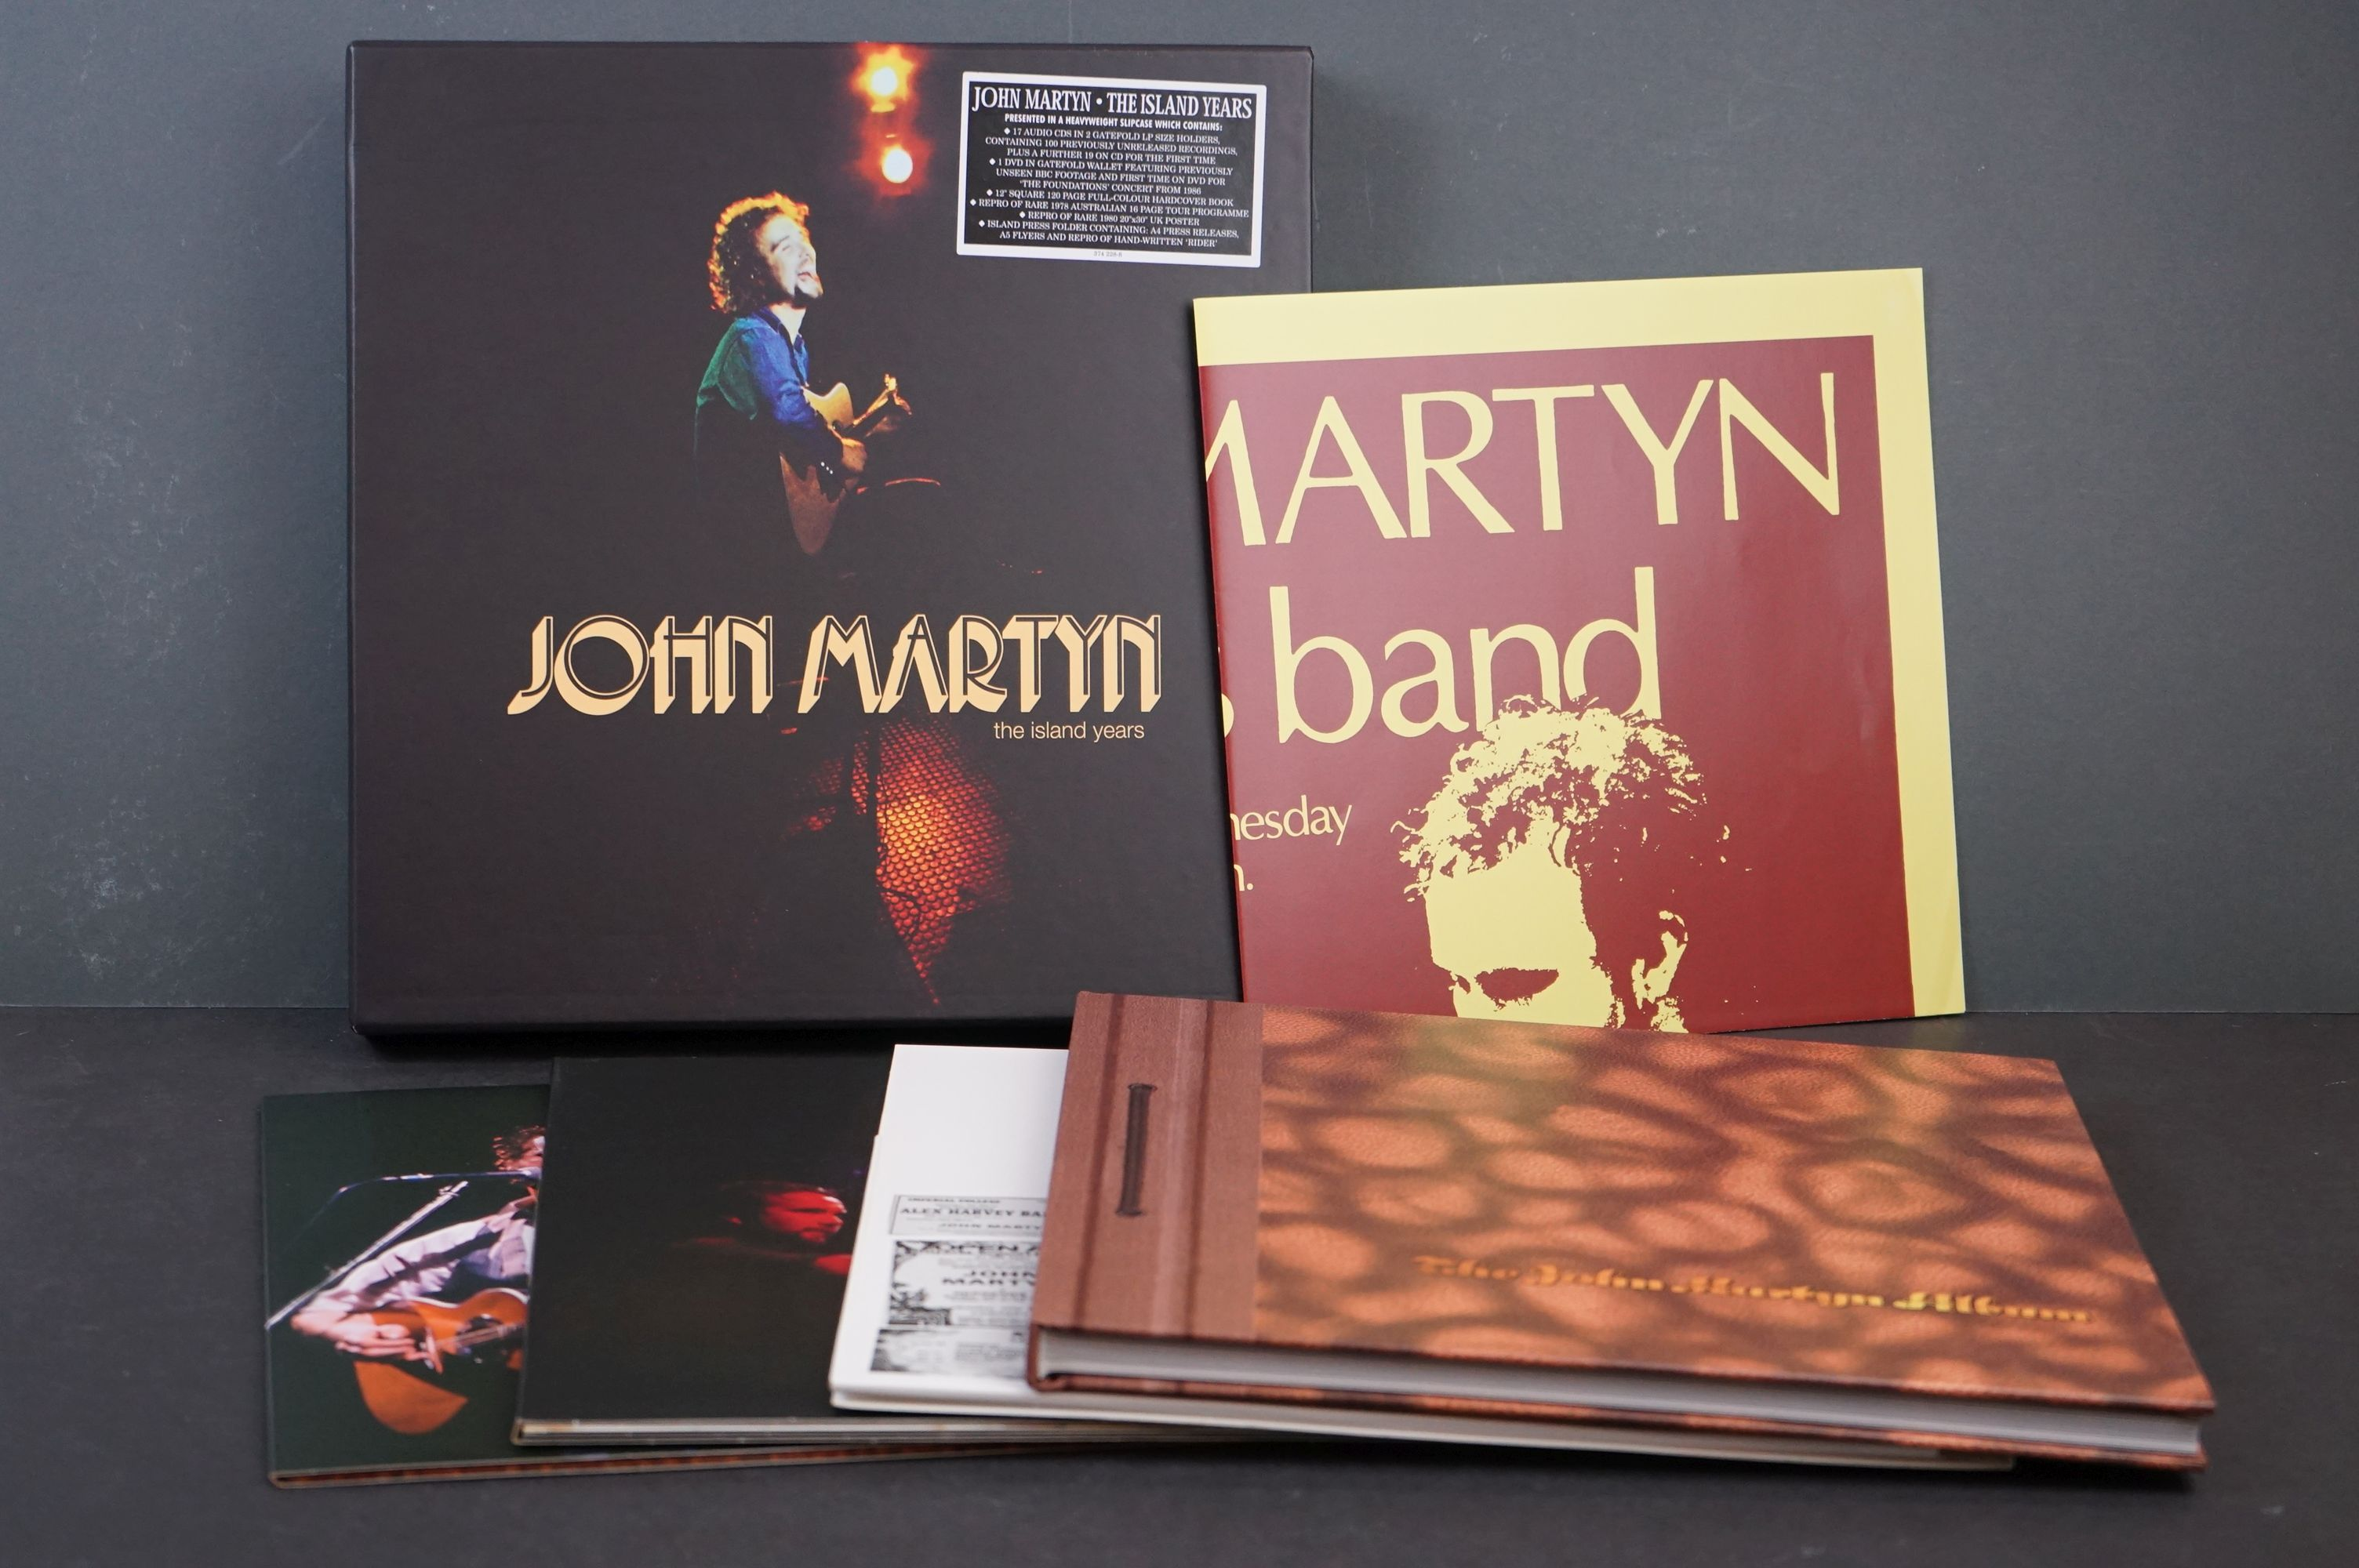 CD / DVD / Vinyl - John Martyn The Island Years 374228-8 complete and ex - Image 2 of 10